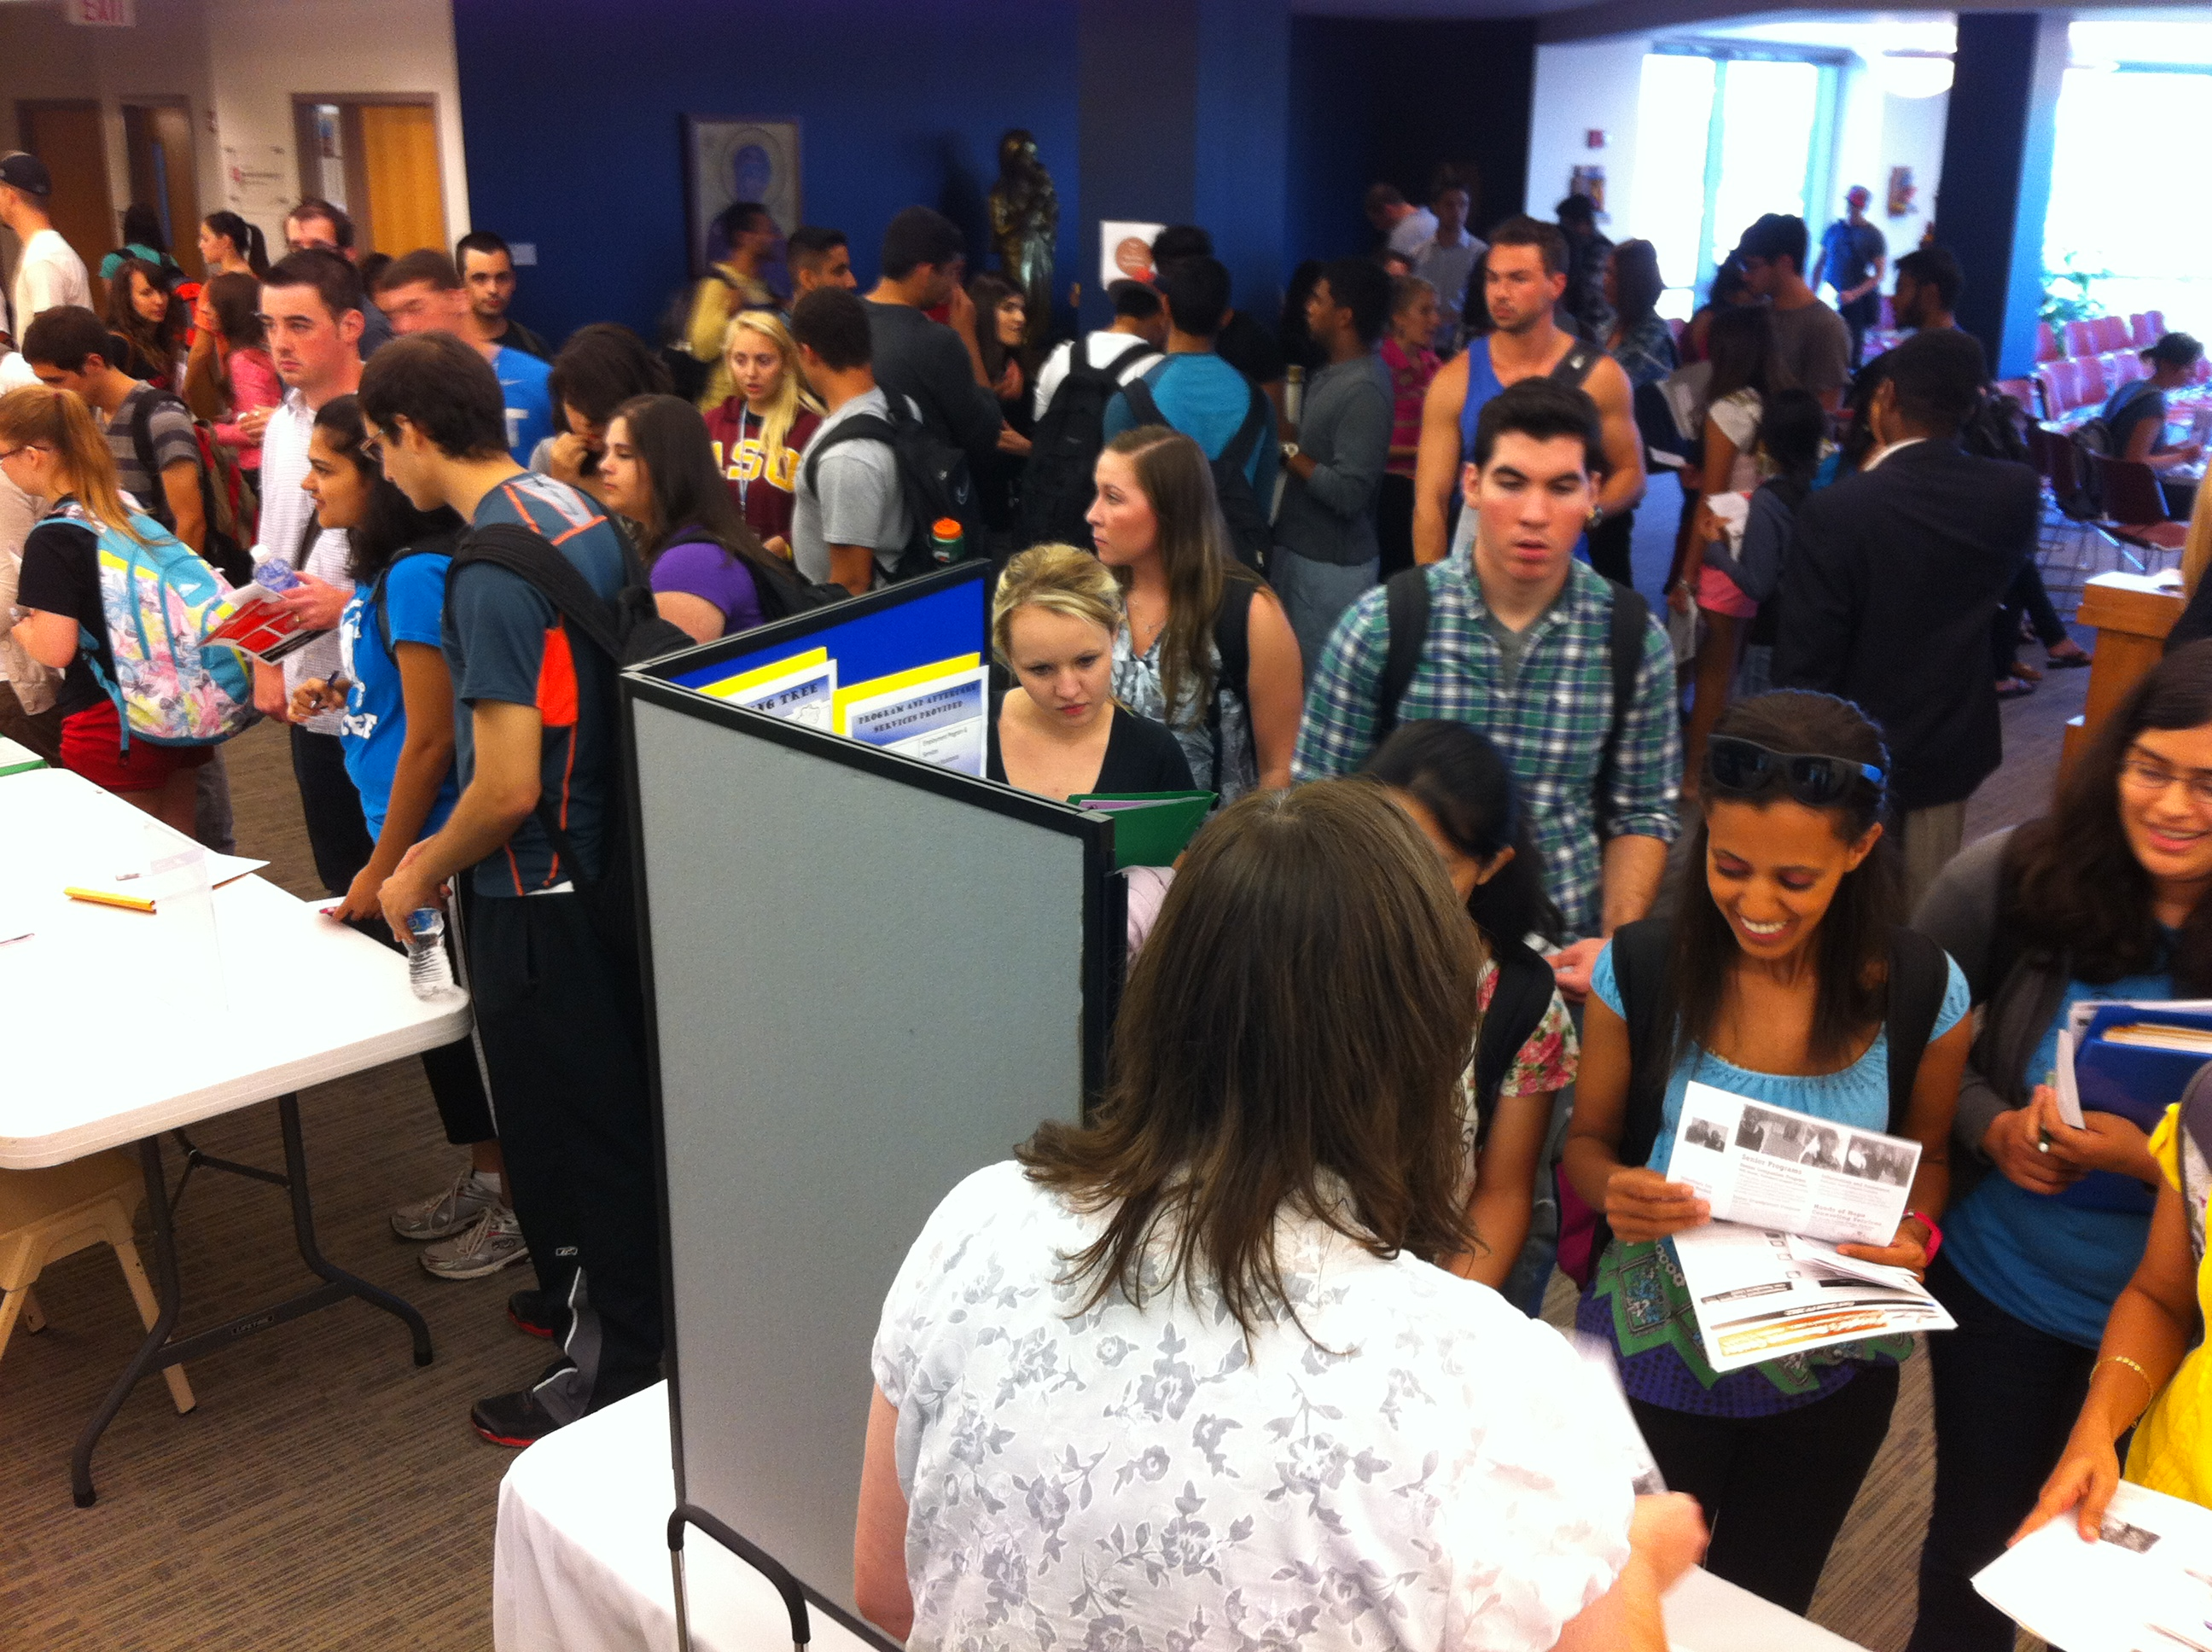 Campus ministry students gathering at sign up